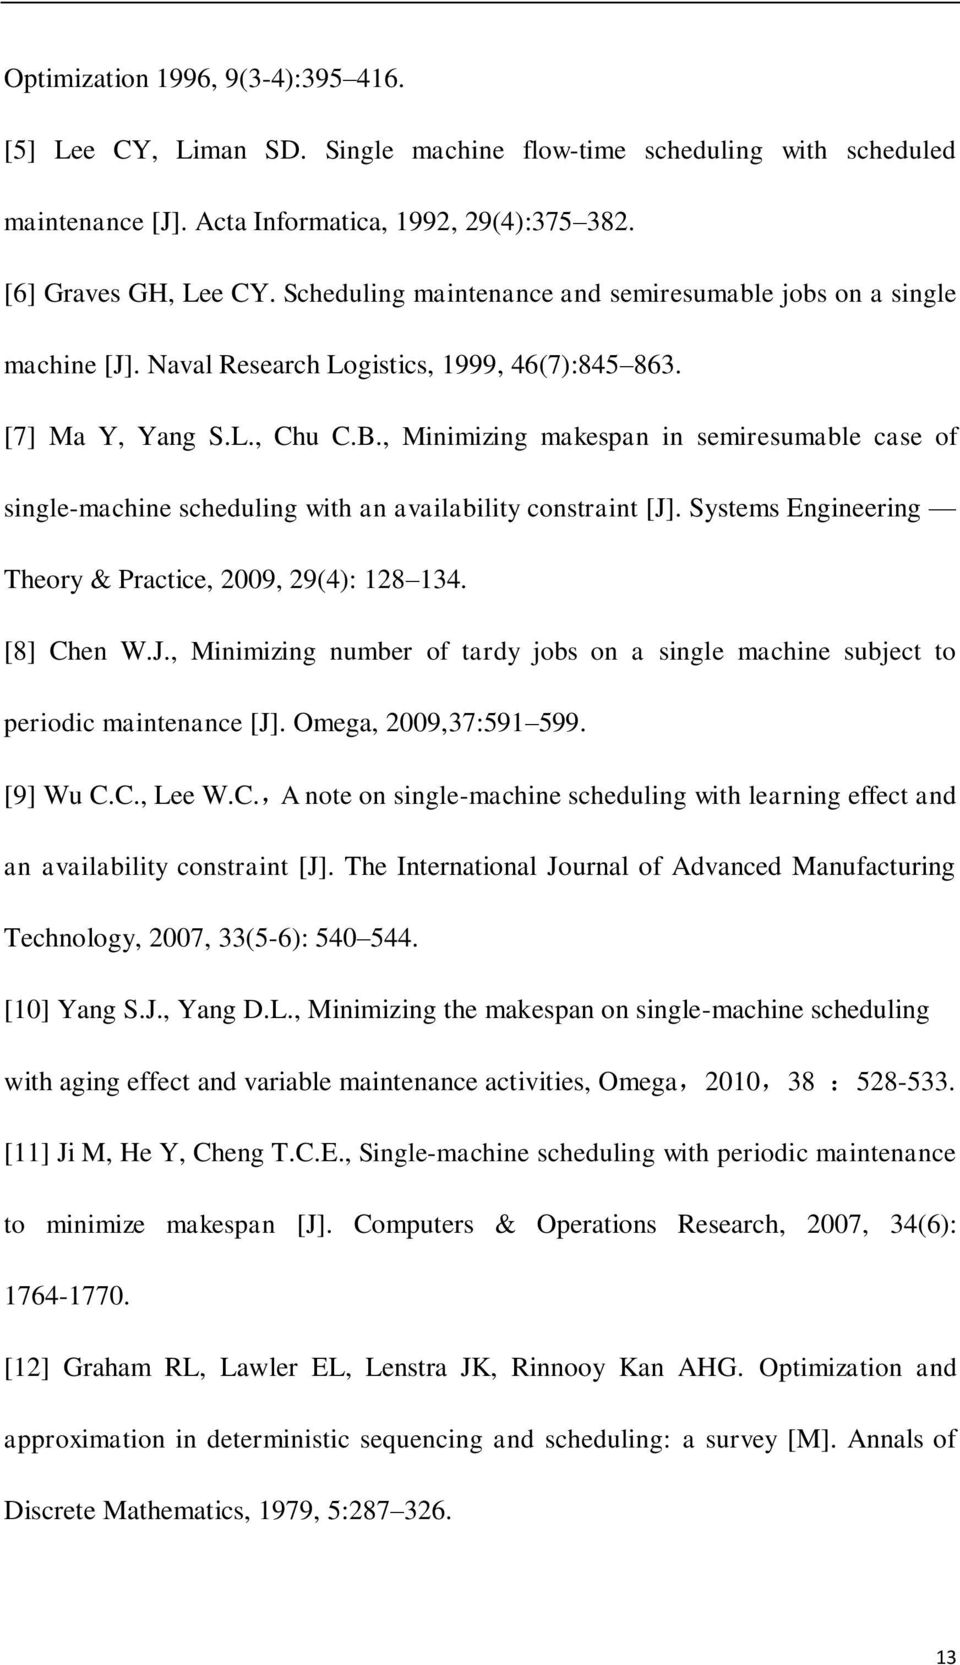 Sysems Engineering Theory & Pracice 009 9(4): 8 34. [8] hen W.J. Minimizing number of ardy jobs on a single machine subjec o periodic mainenance [J]. Omega 00937:59 599. [9] Wu.. Lee W.